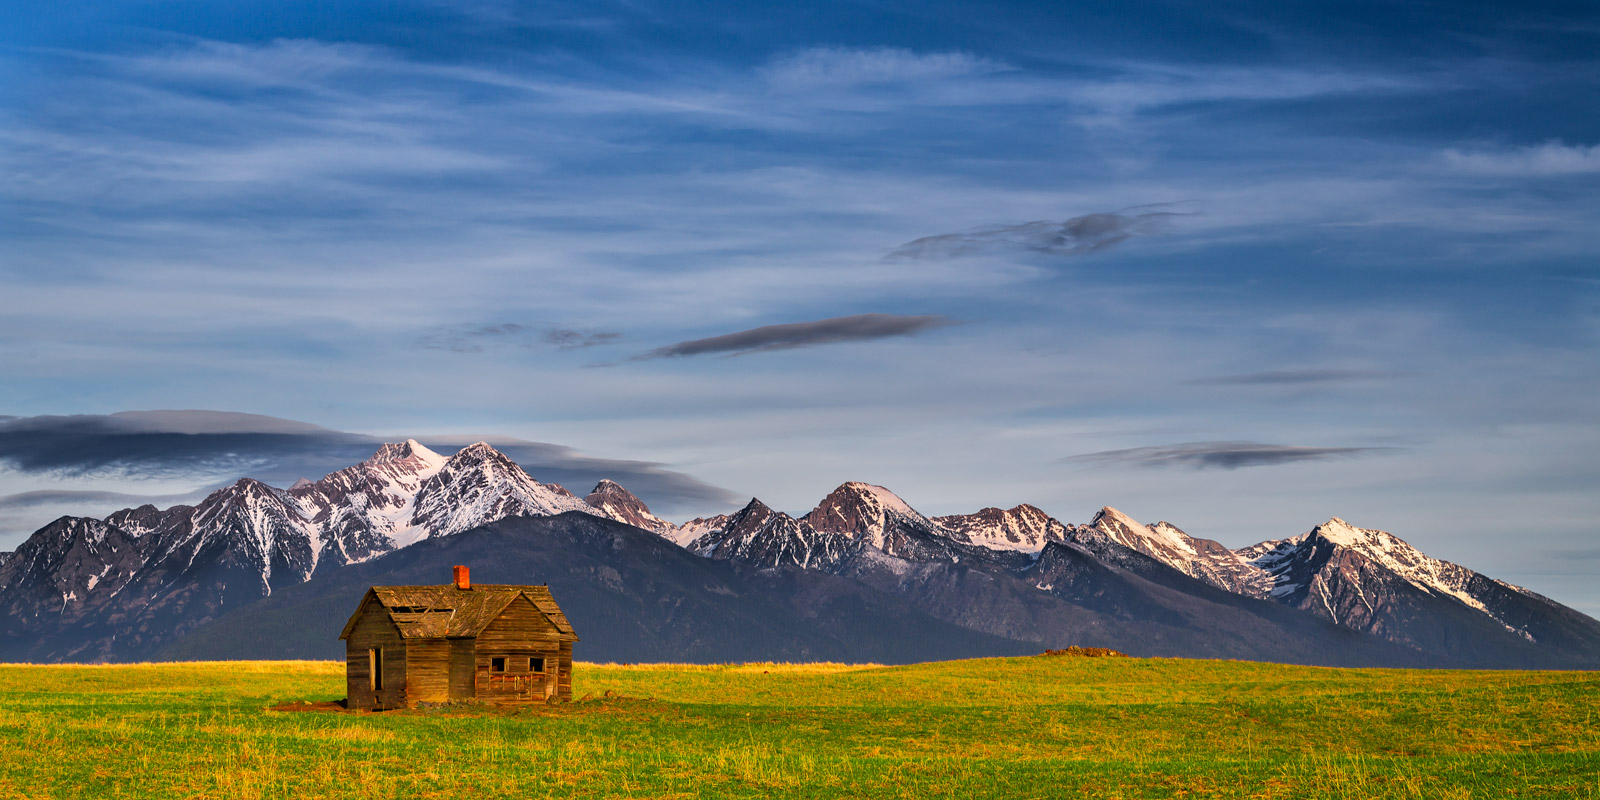 Montana, Mission Range, Mountain, House, limited edition, photograph, fine art, landscape, photo